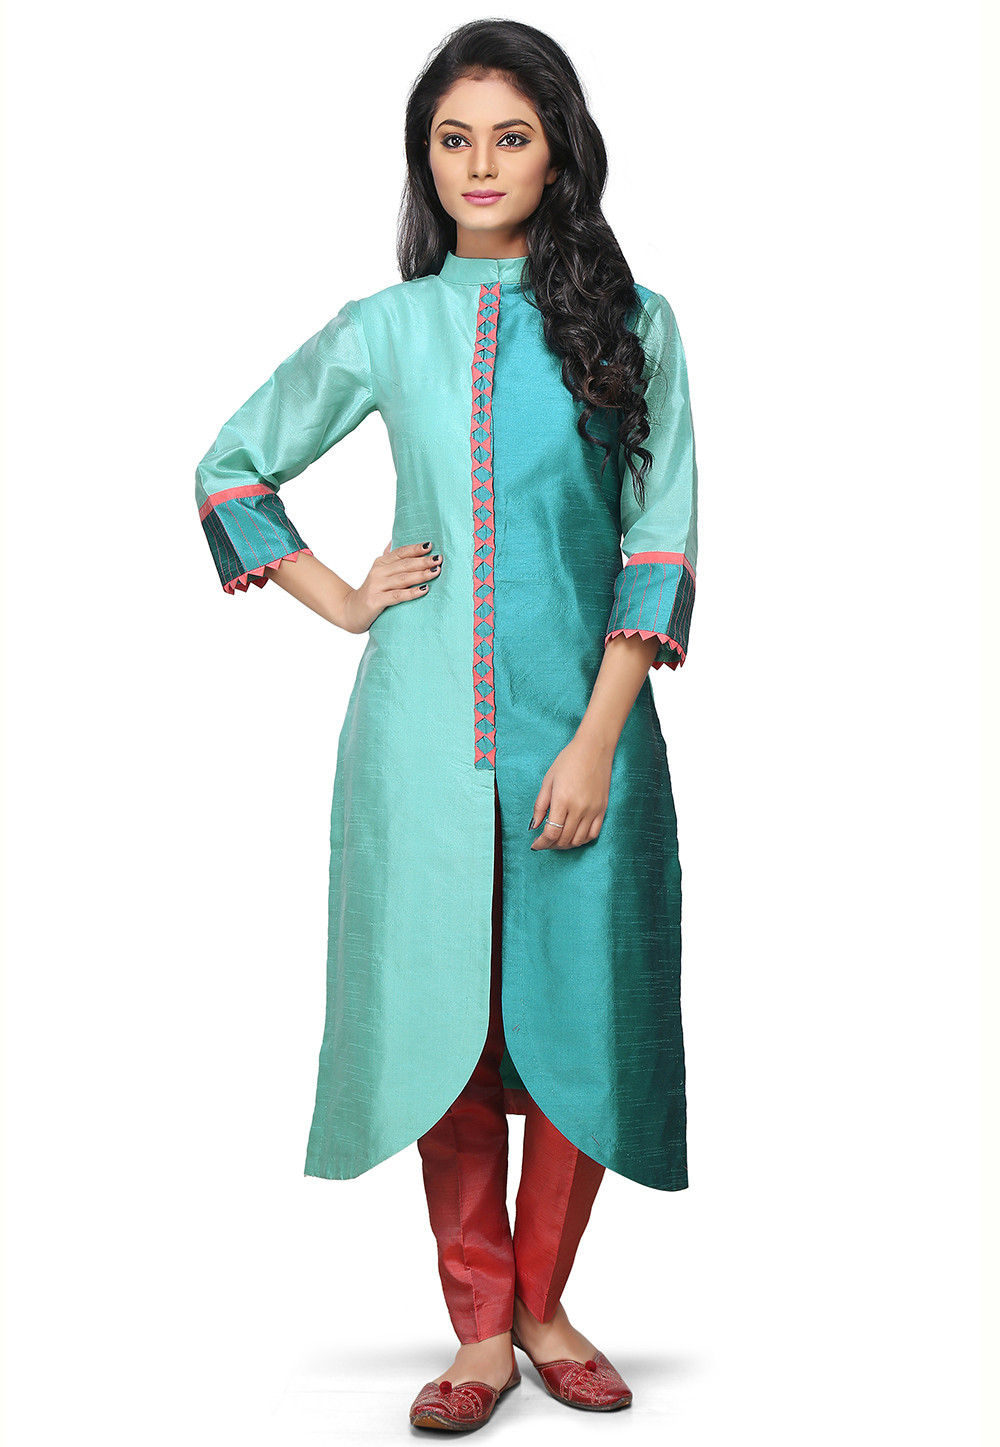 Asymmetric Art Silk Long Kurta in Teal Green and Teal Blue